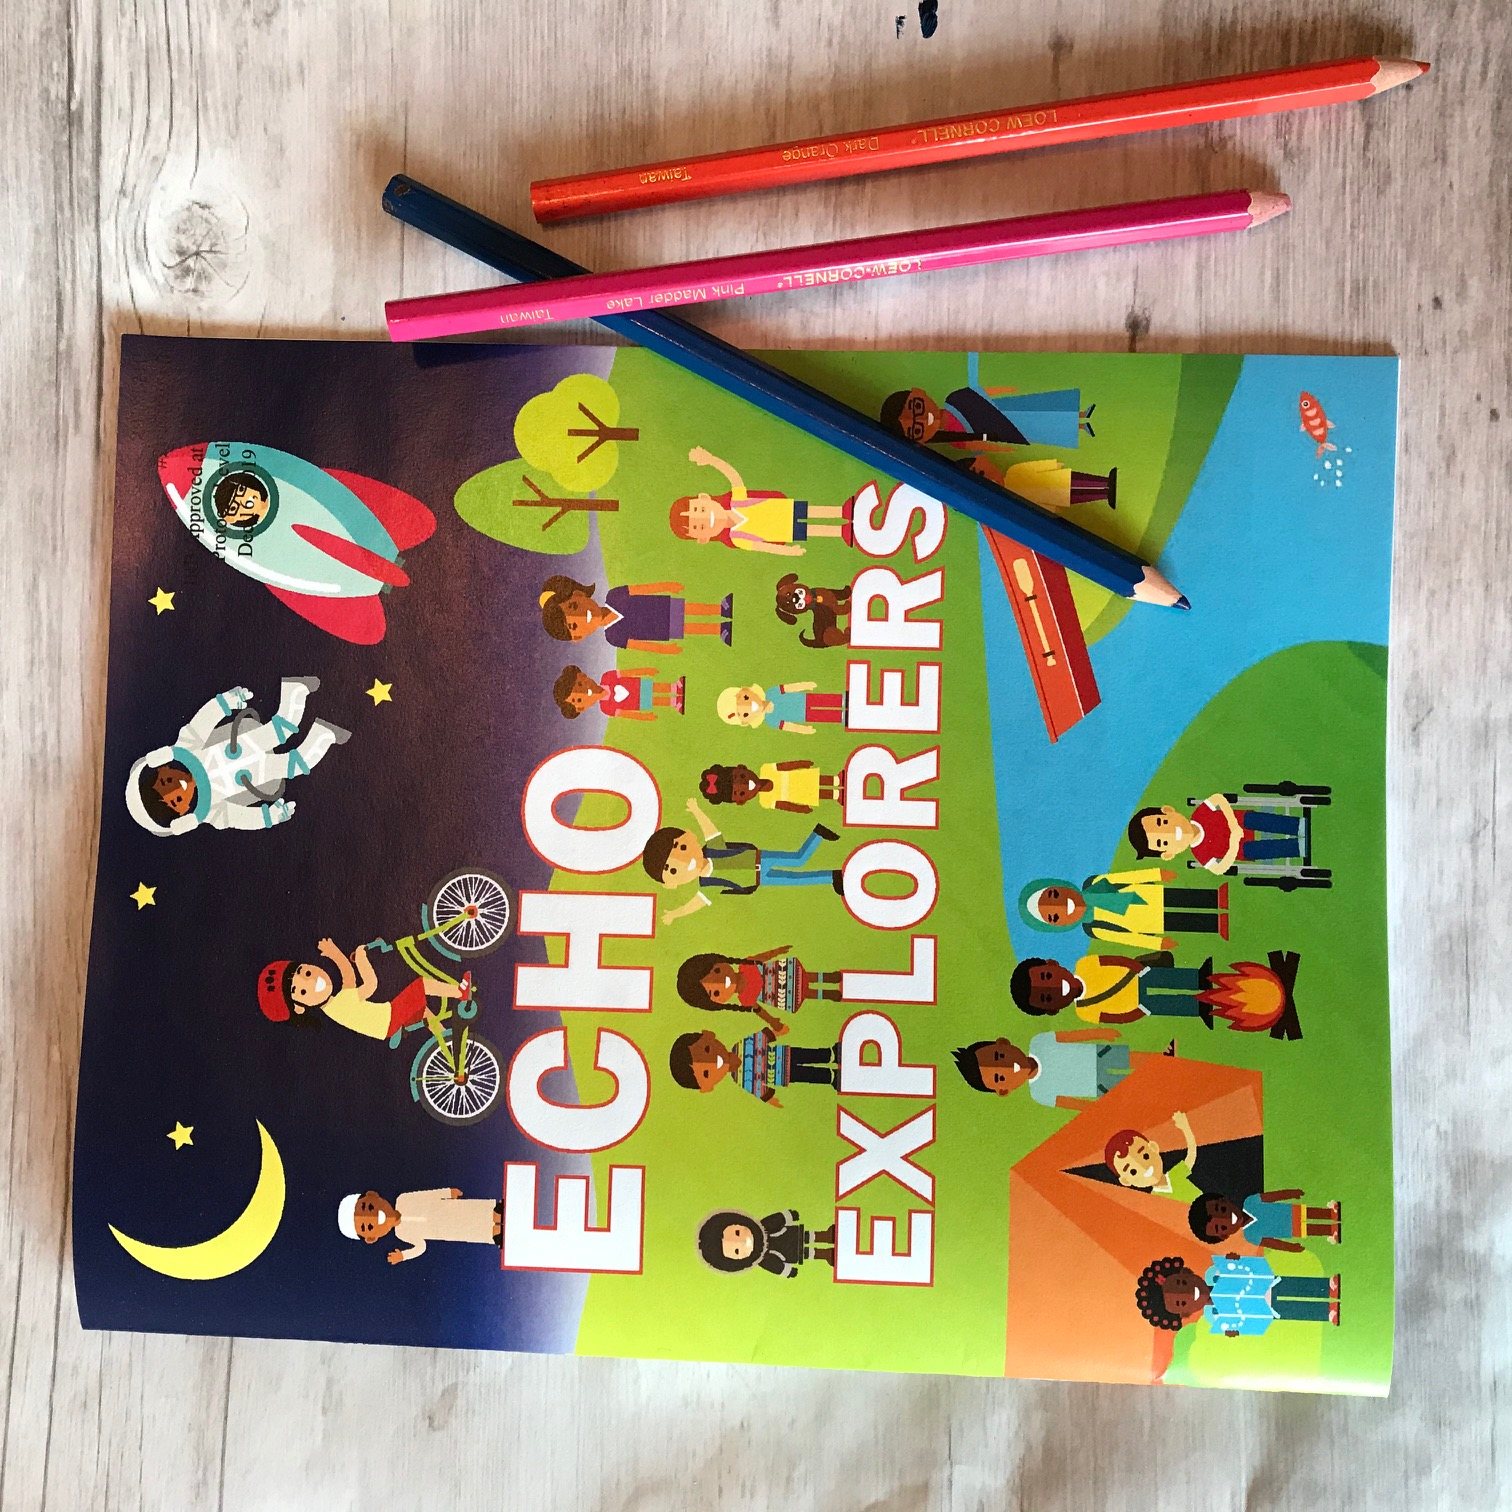 Echo Explorers coloring book